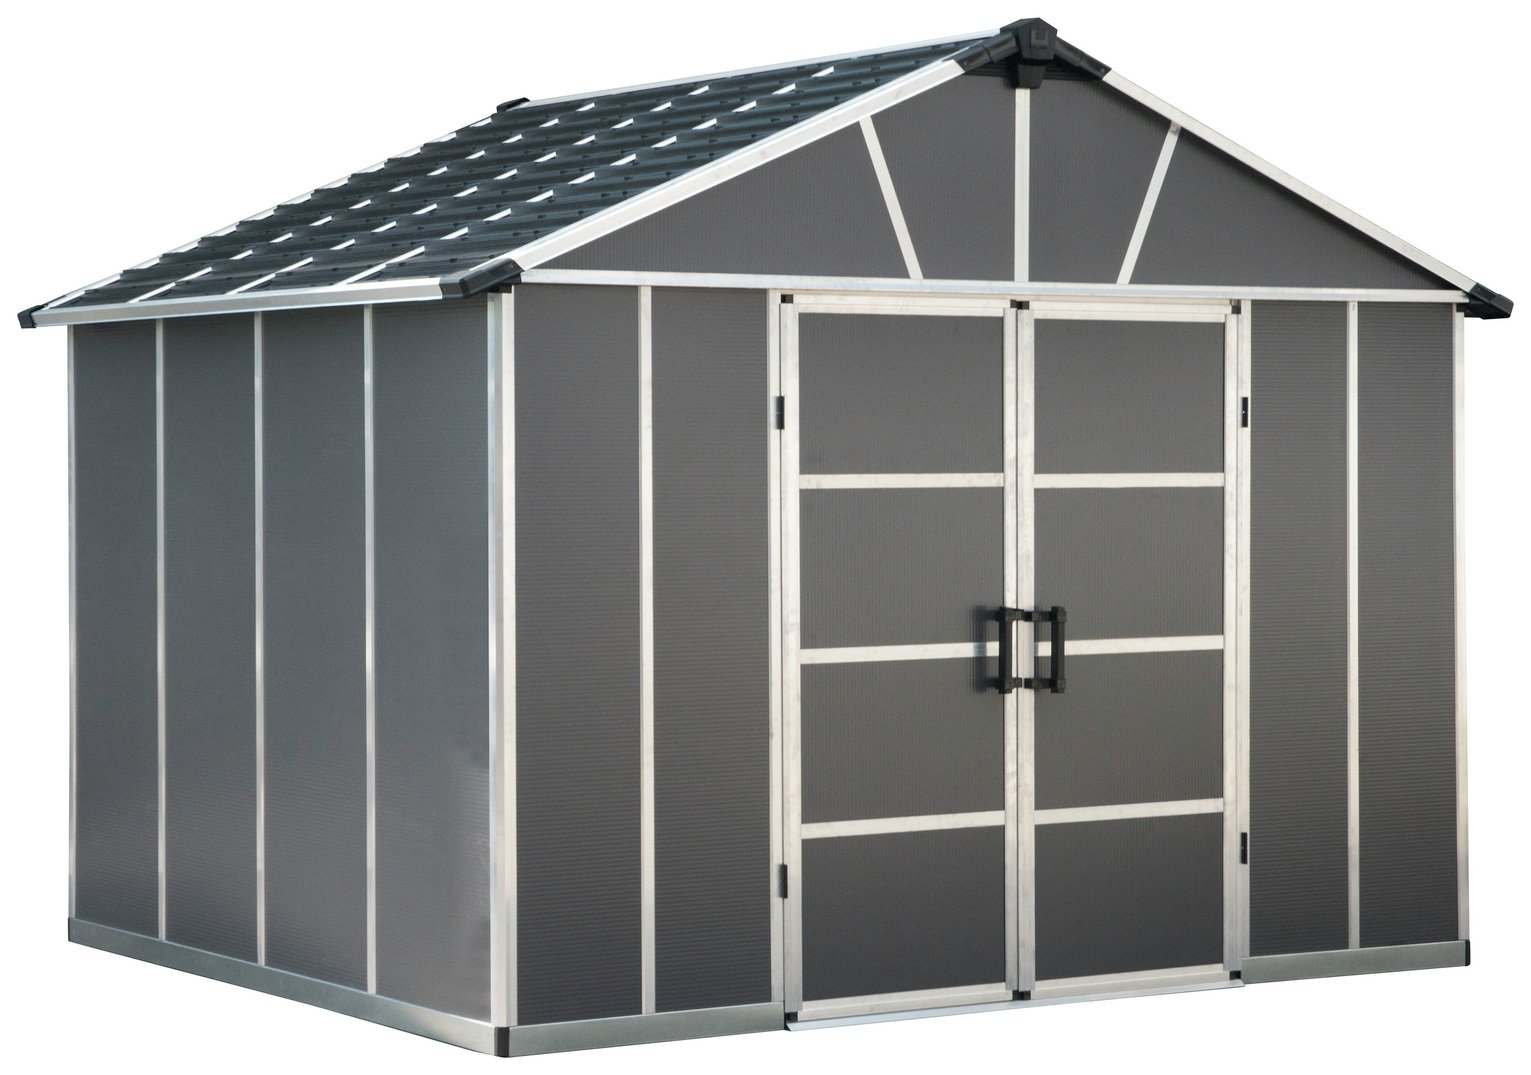 Palram Yukon Plastic 11x9ft Shed - Dark Grey Best Price, Cheapest Prices